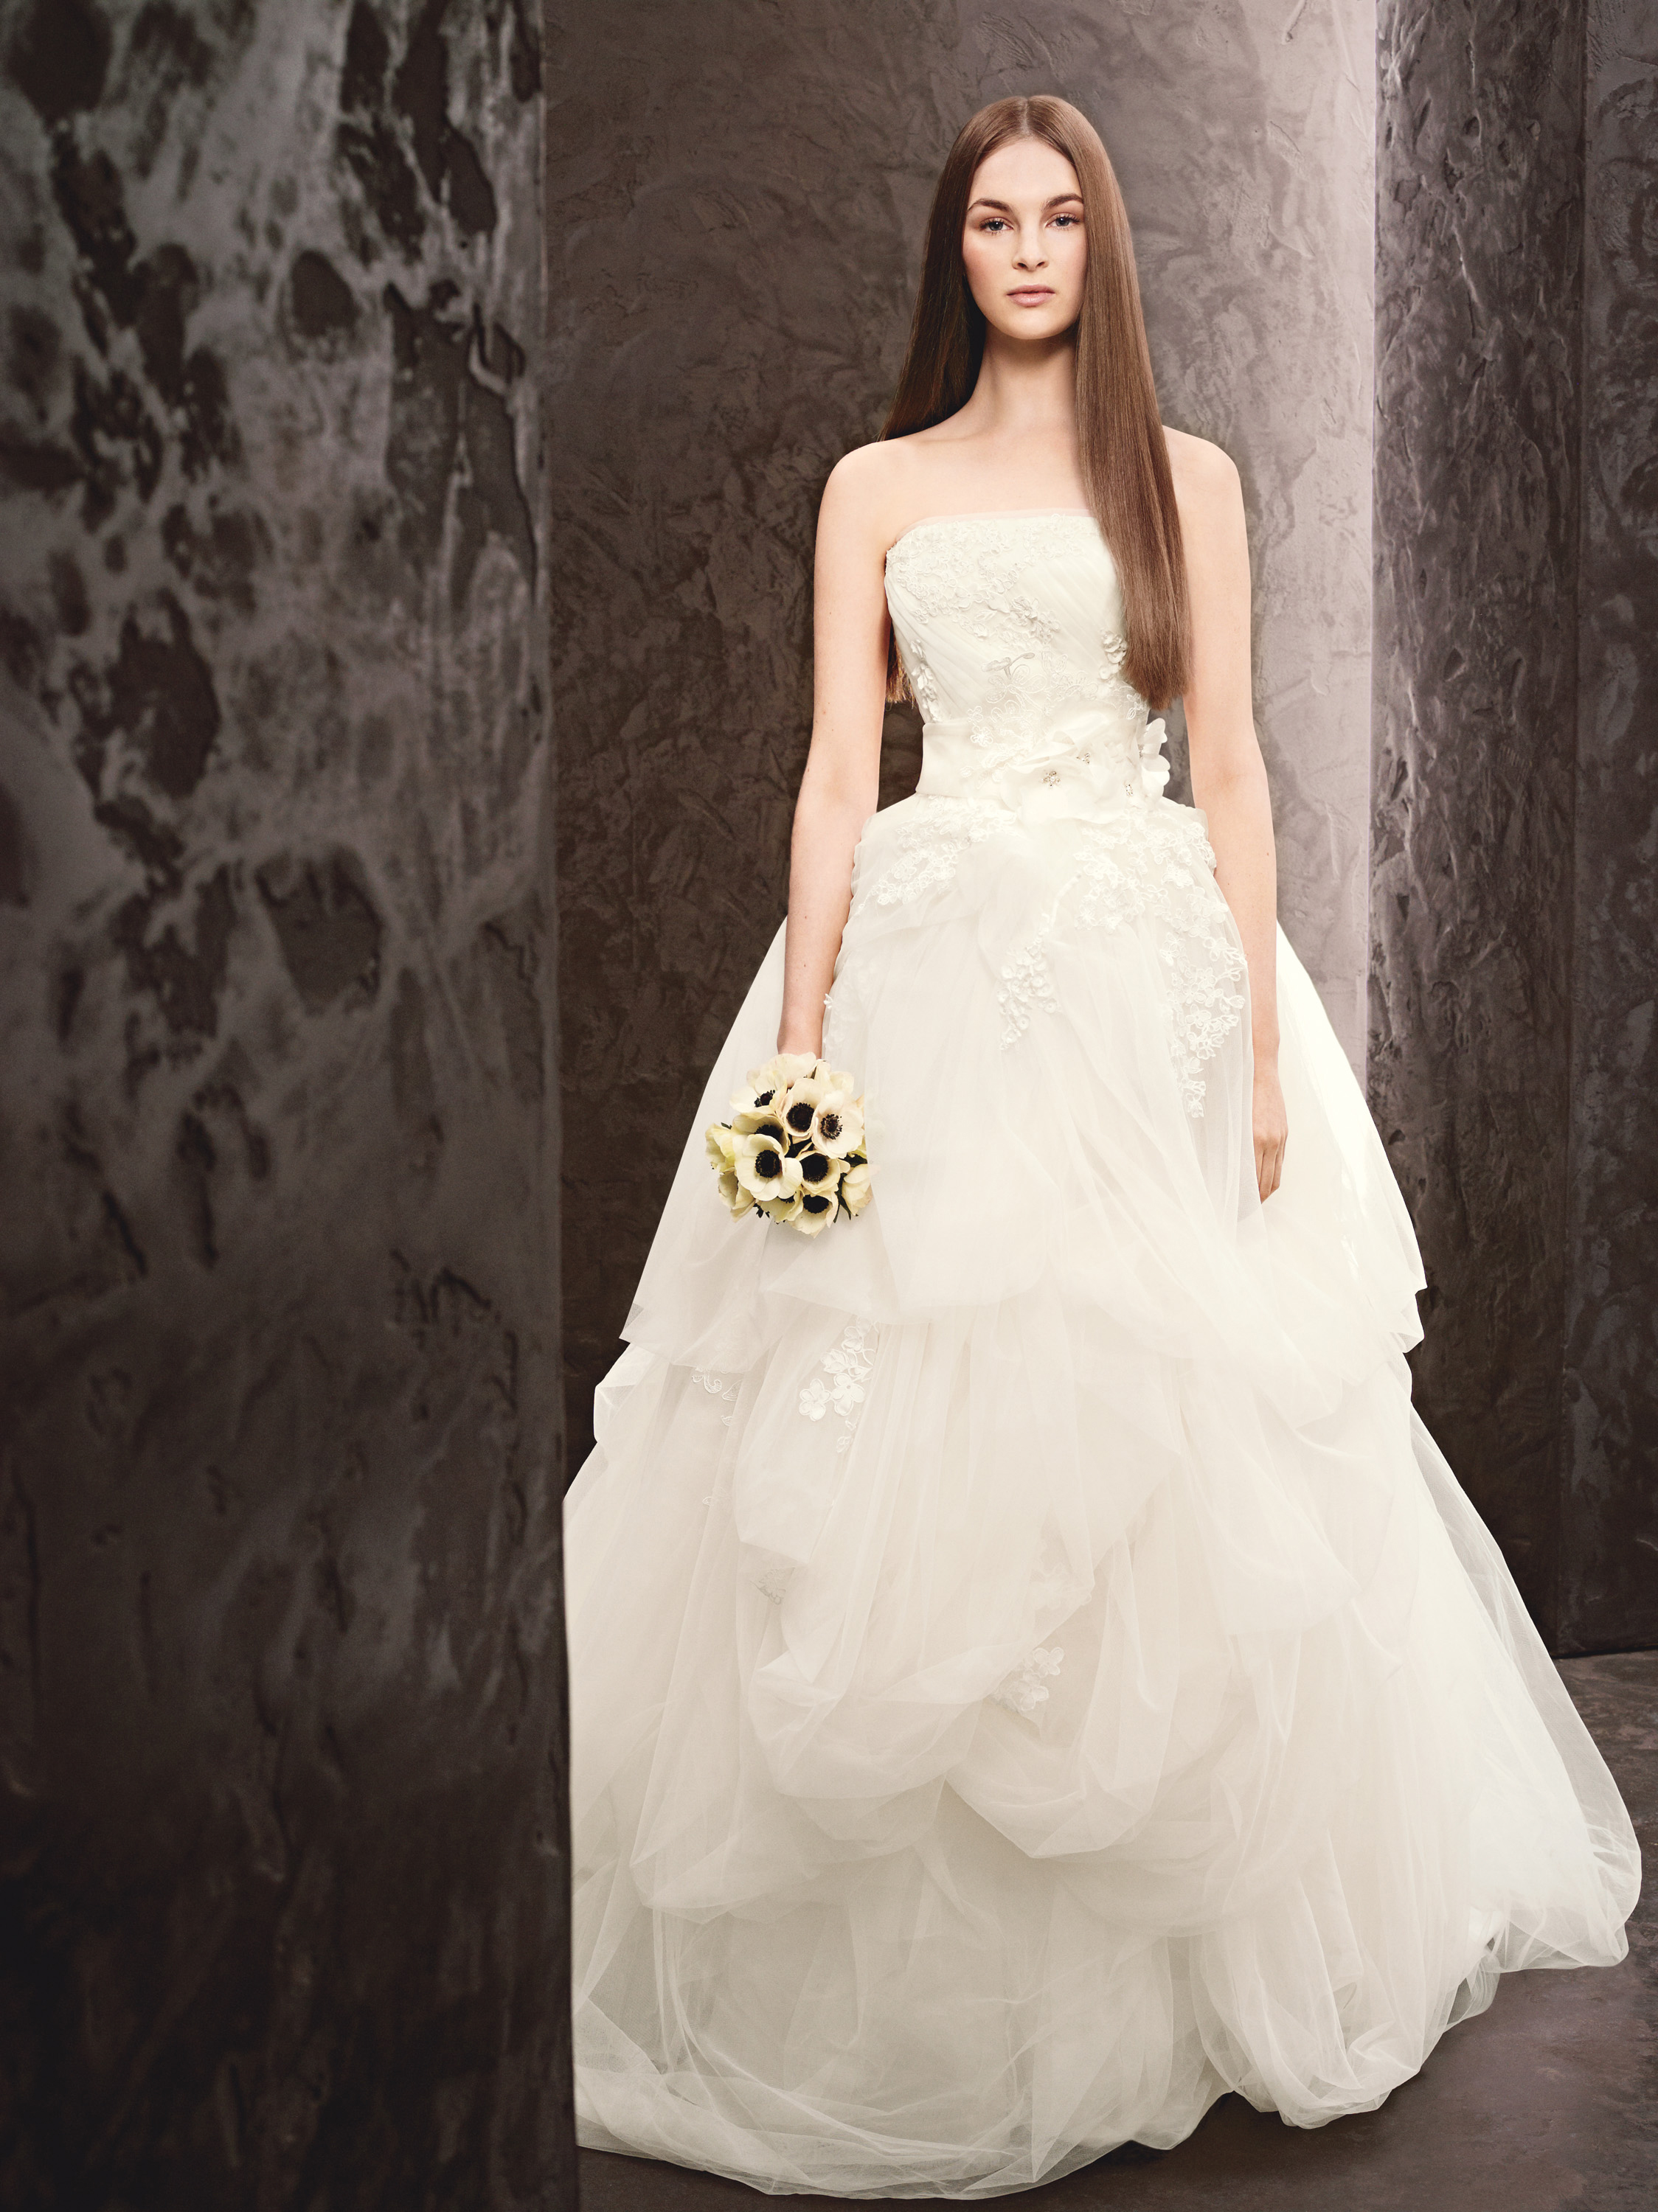 Wedding dresses designs photos pictures pics images vera for Vera wang used wedding dress